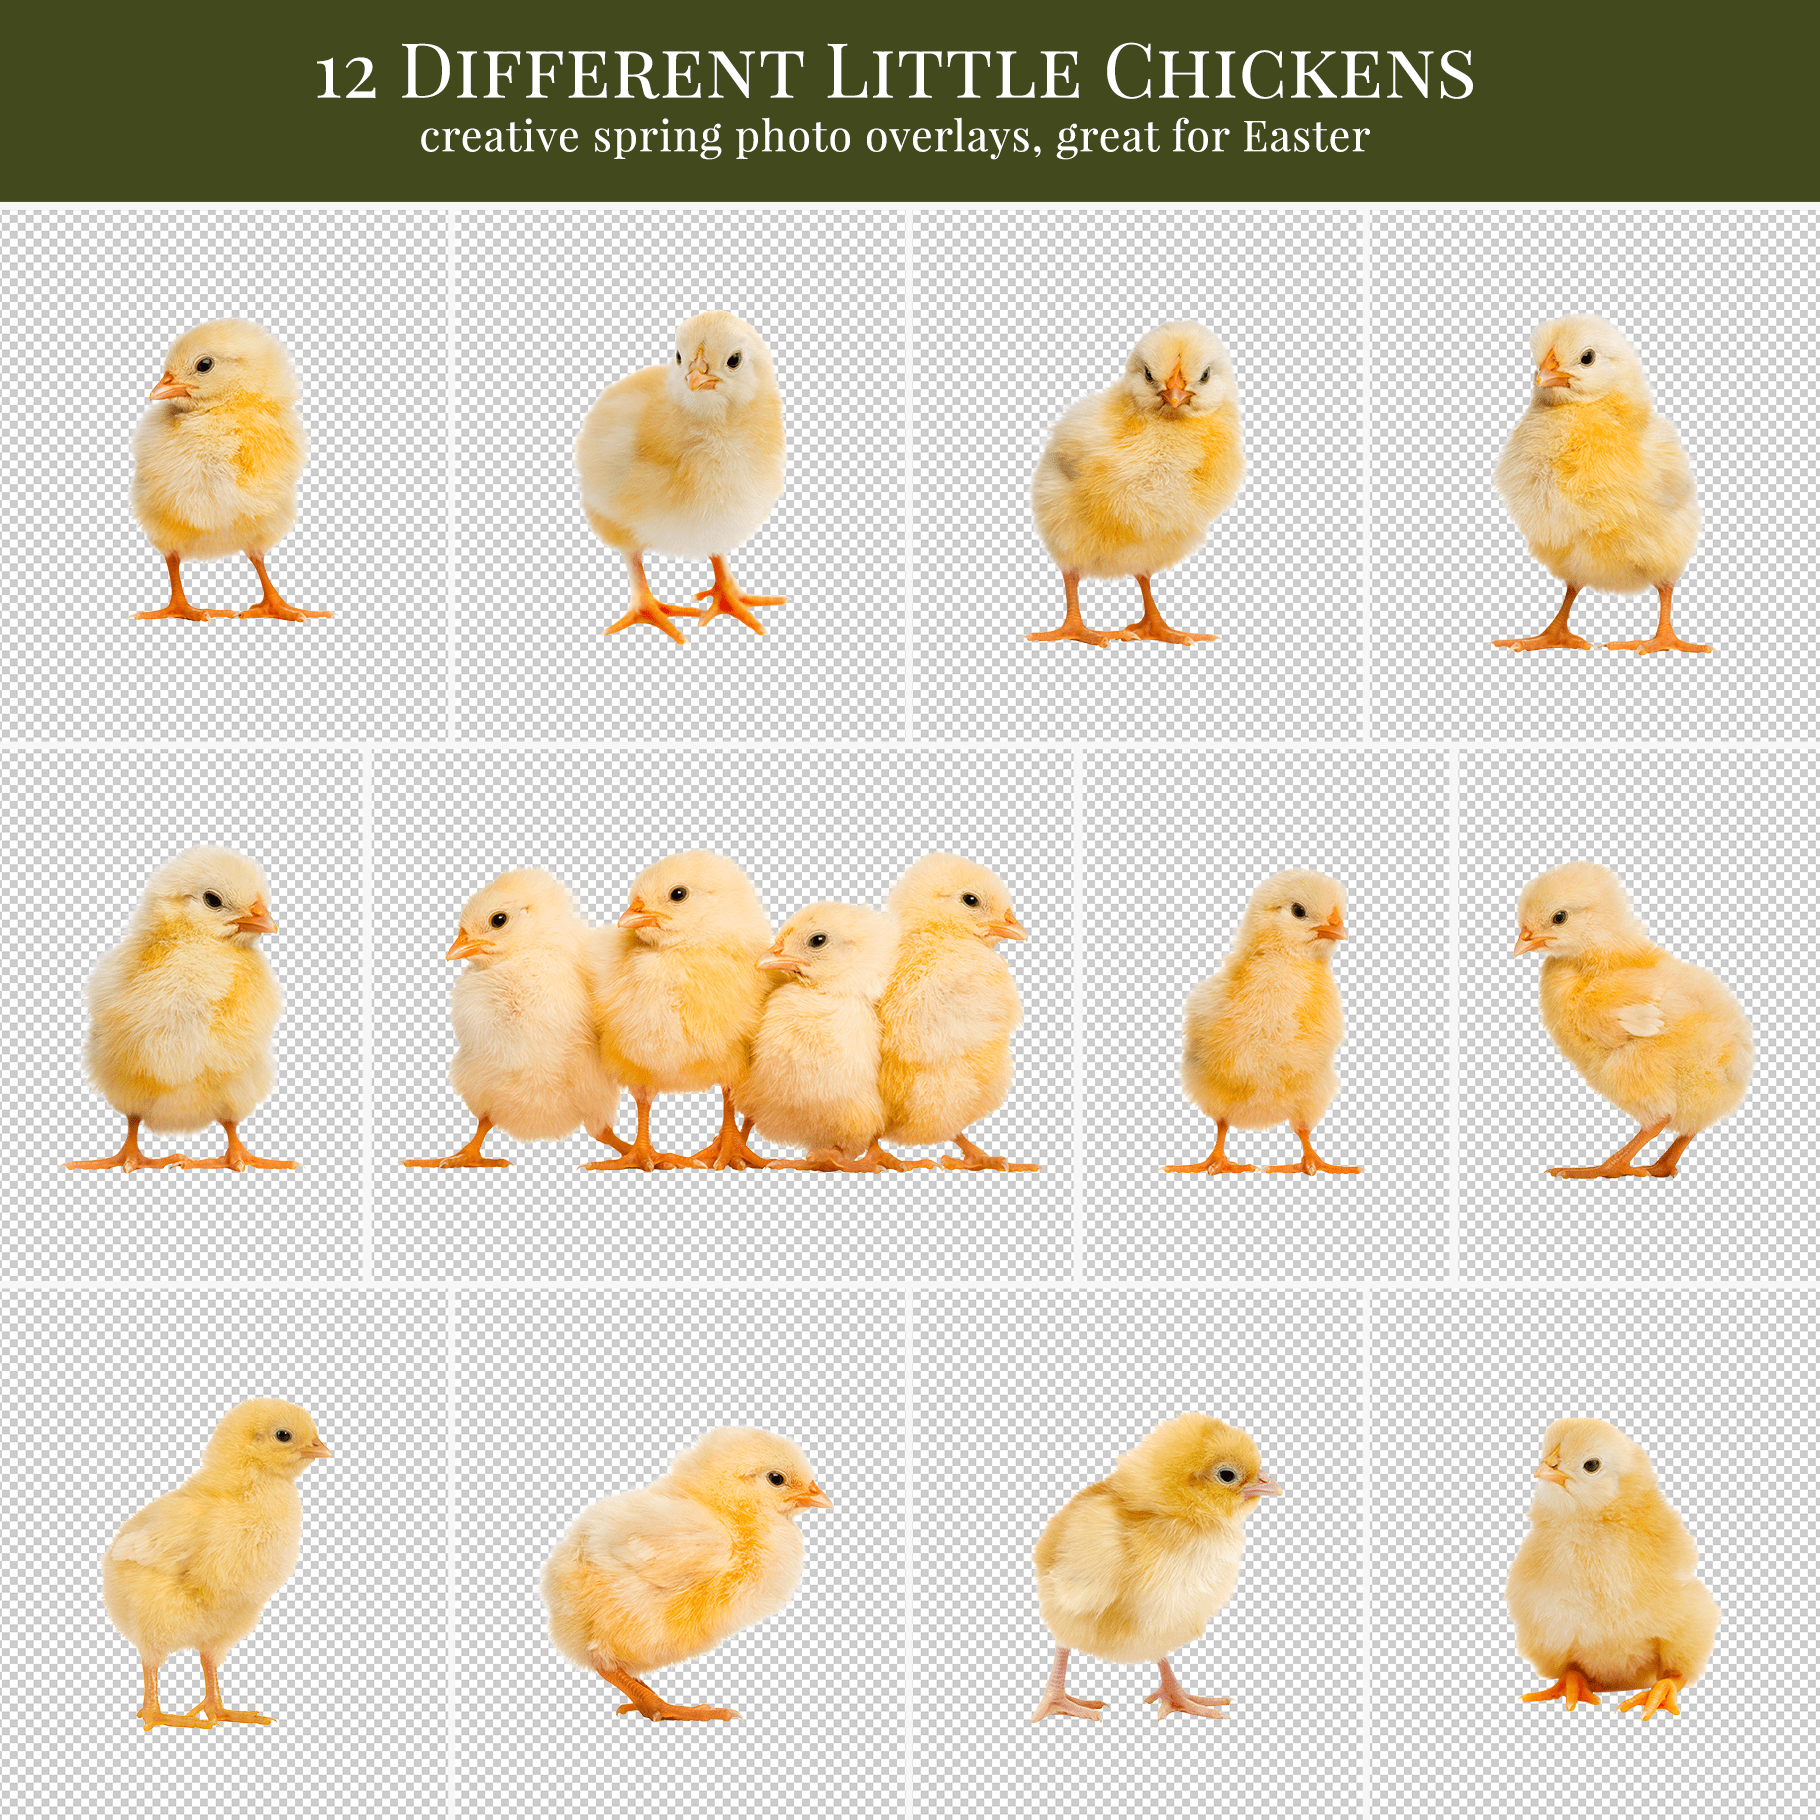 spring chickens overlays